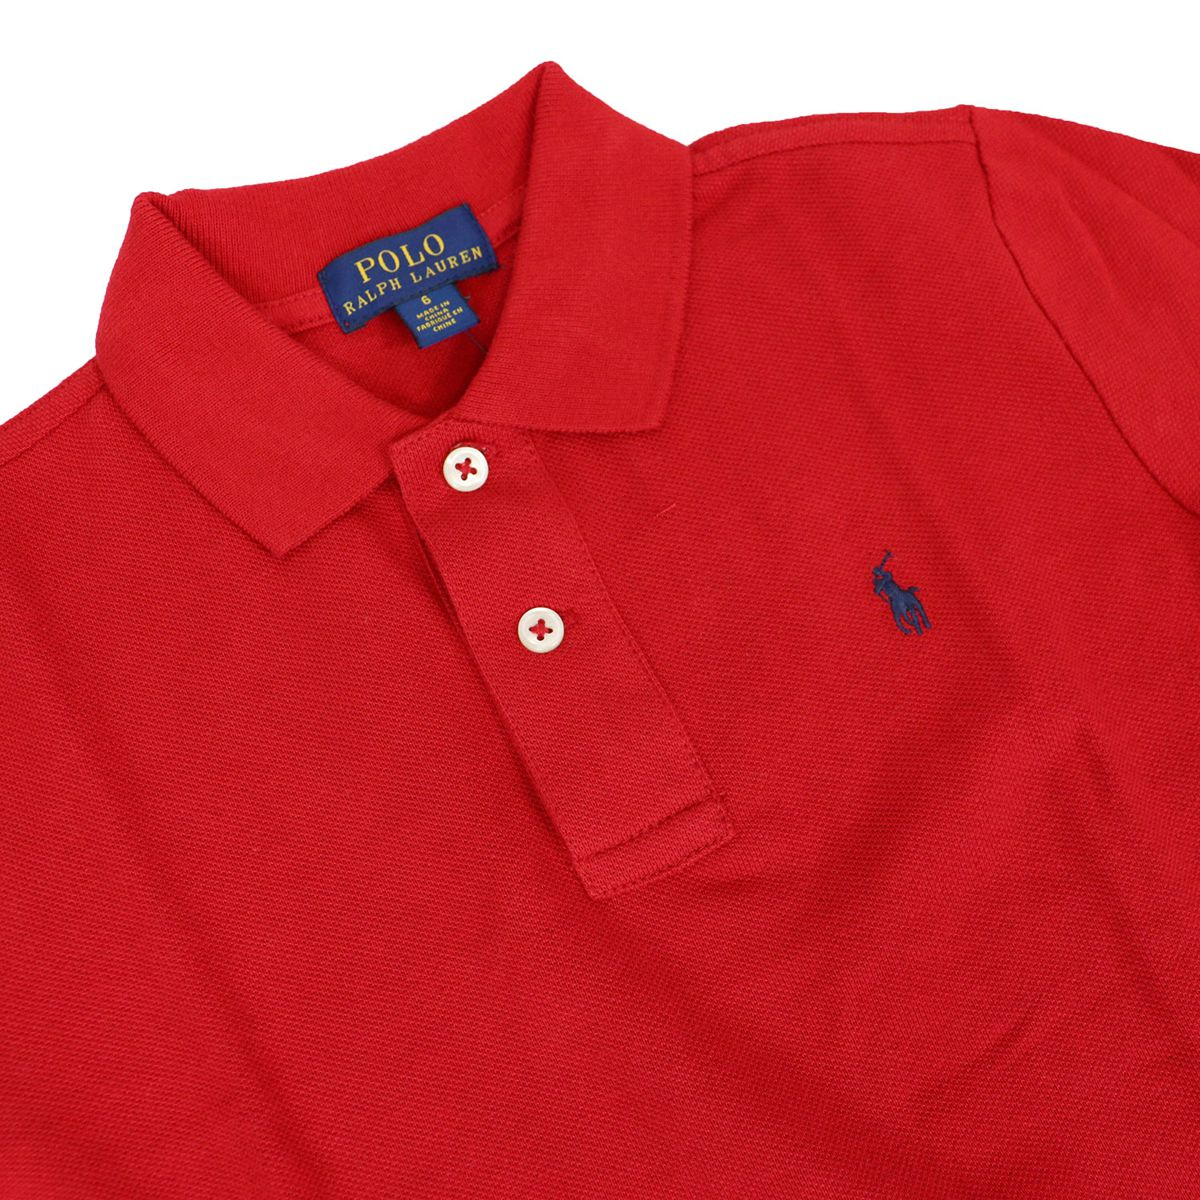 Long sleeve polo shirt with small embroidered logo Red Polo Ralph Lauren